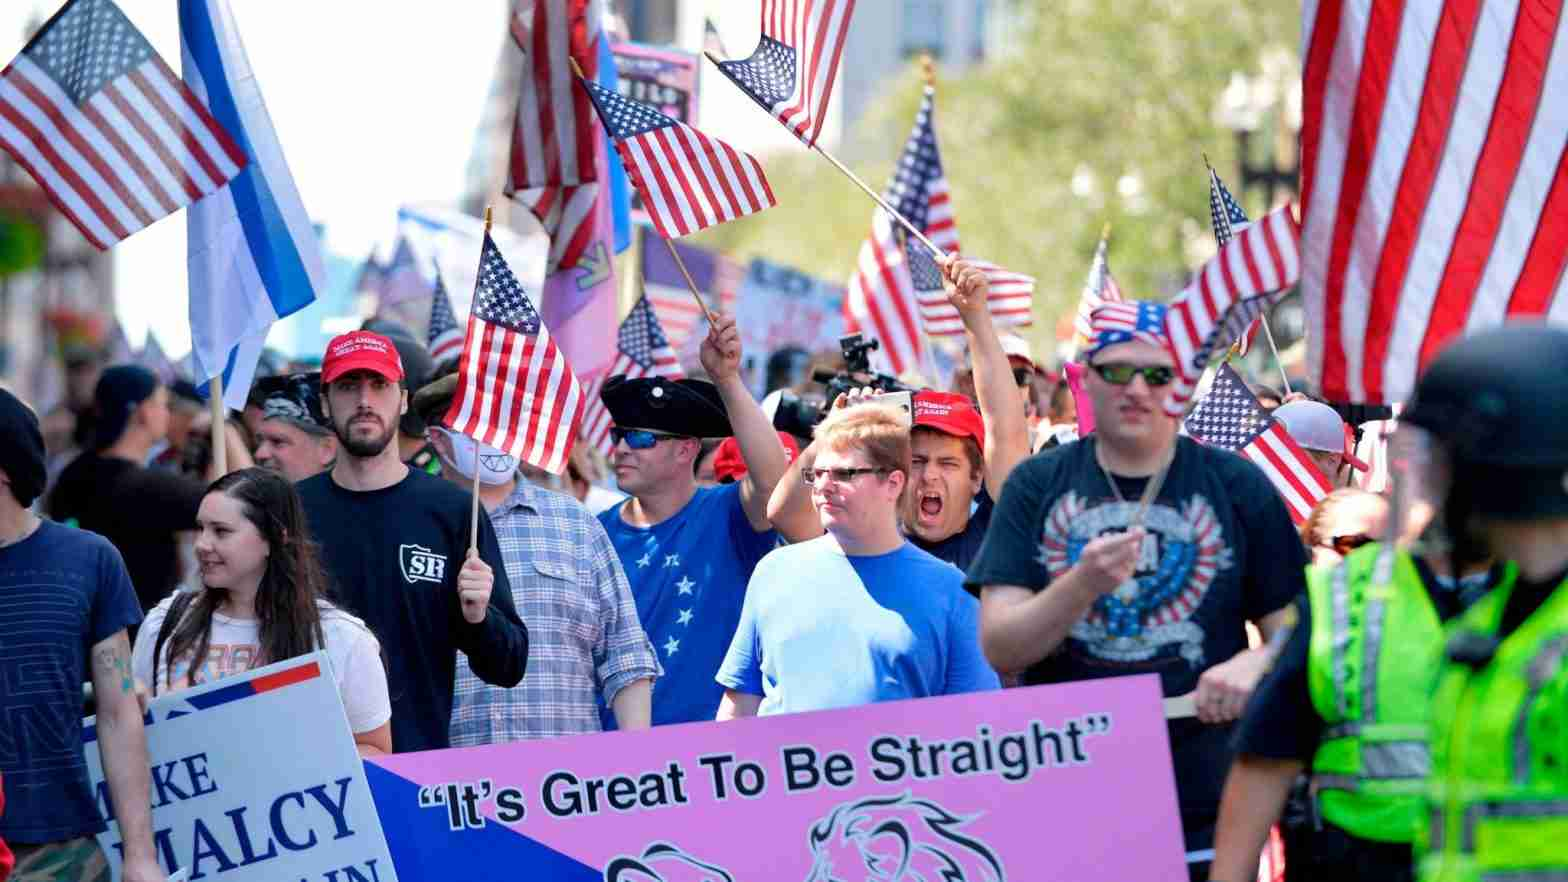 Maga Guide of goals and rules against street protest increase effectiveness